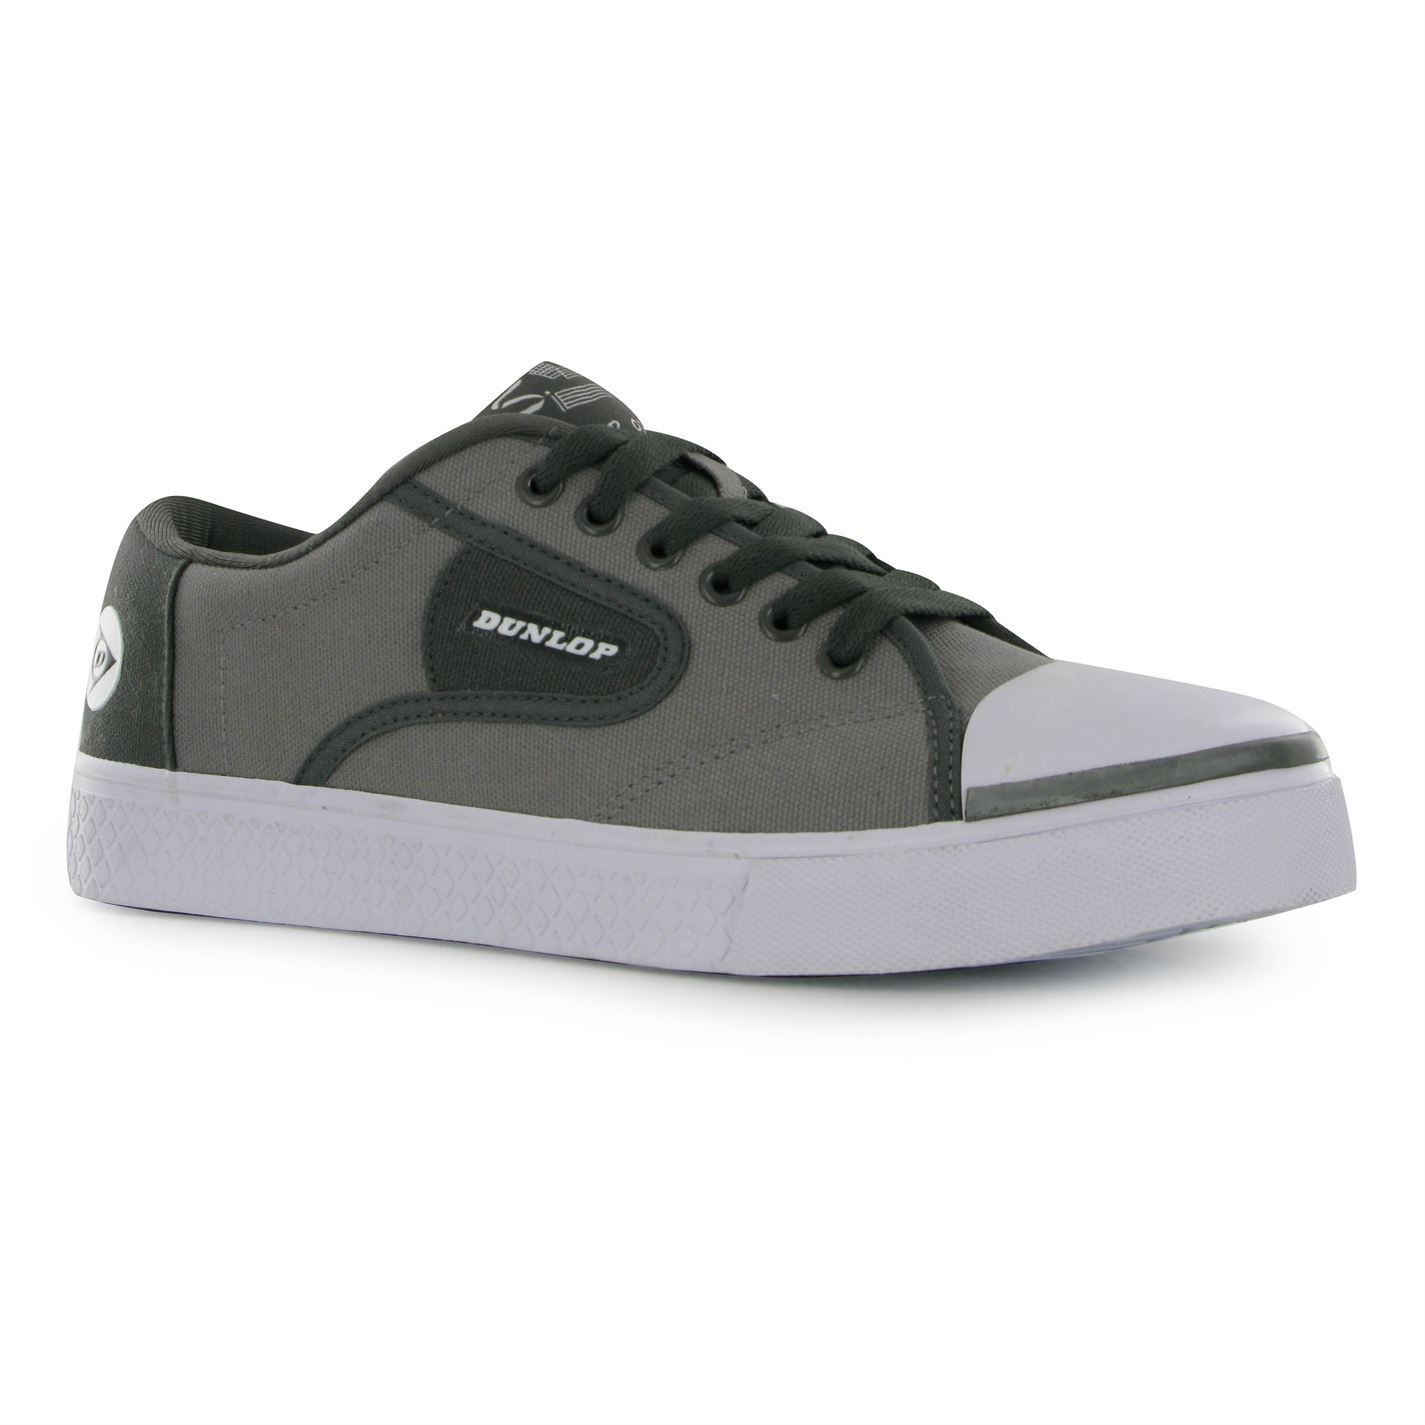 dunlop green flash snr 00 mens shoes trainers gents ebay